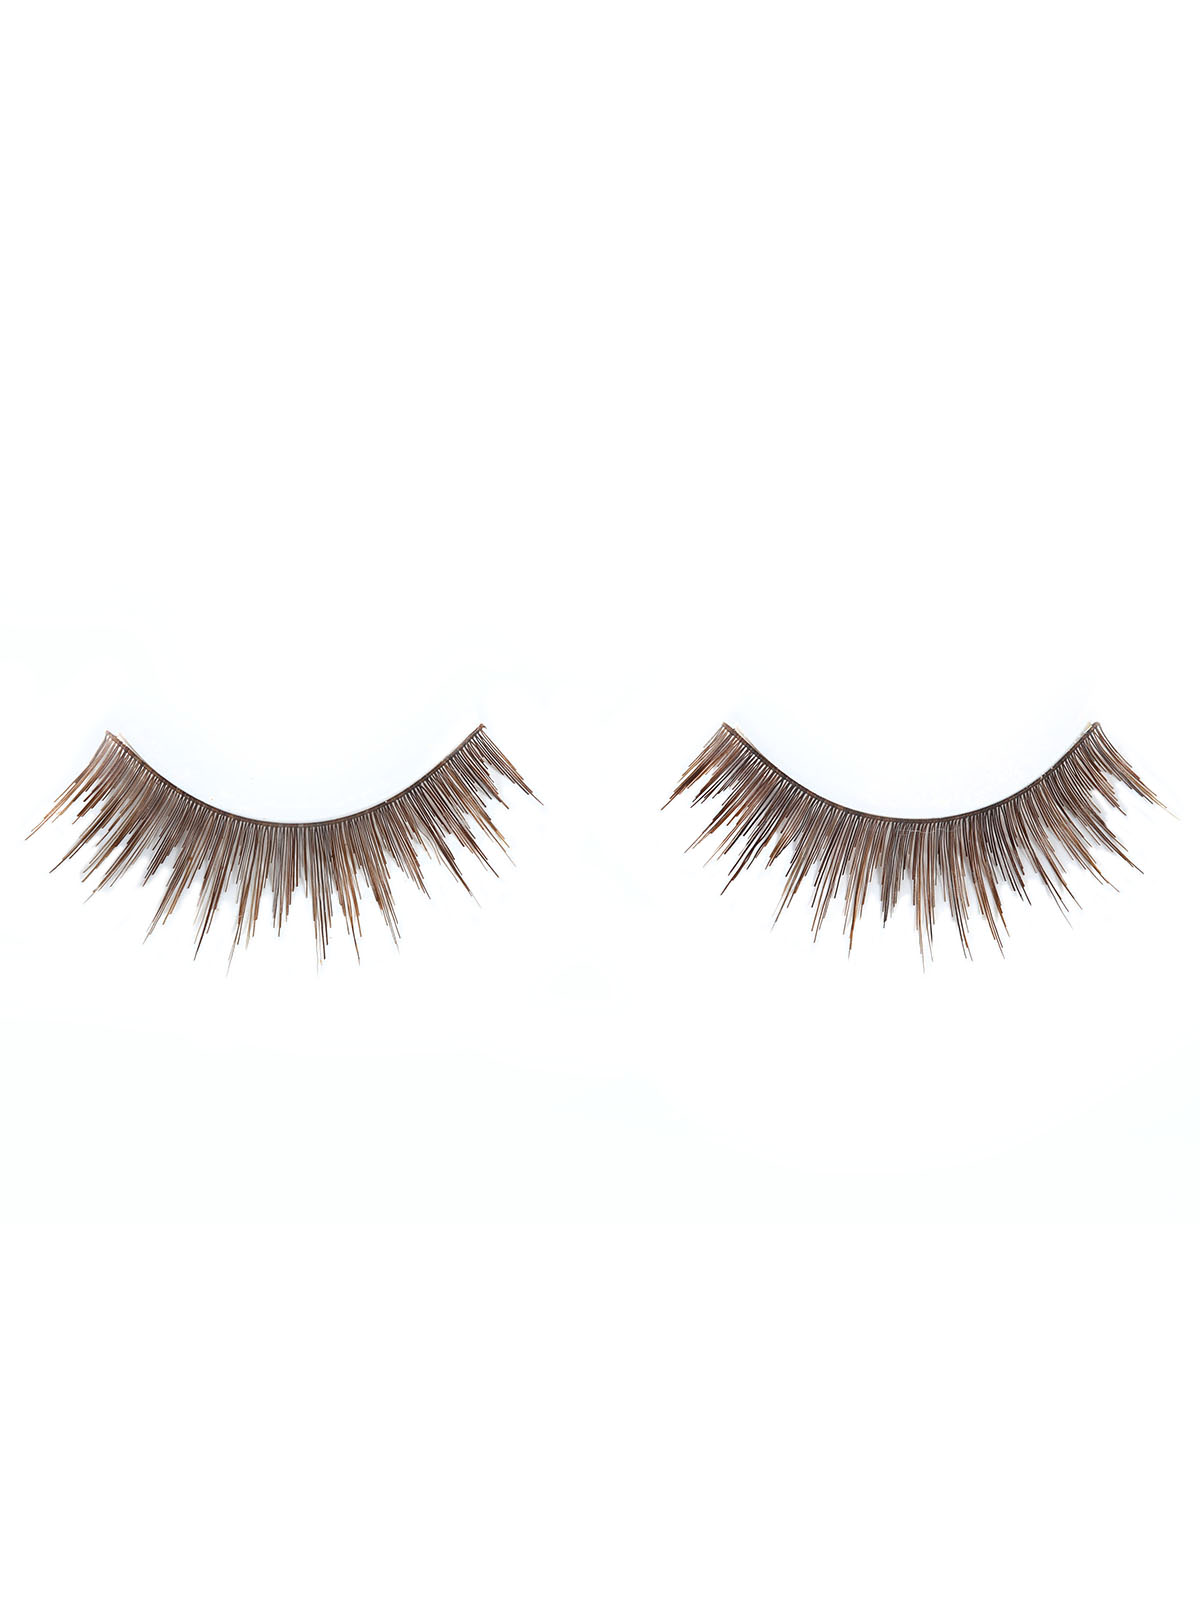 DD Lashes – #600 Brown